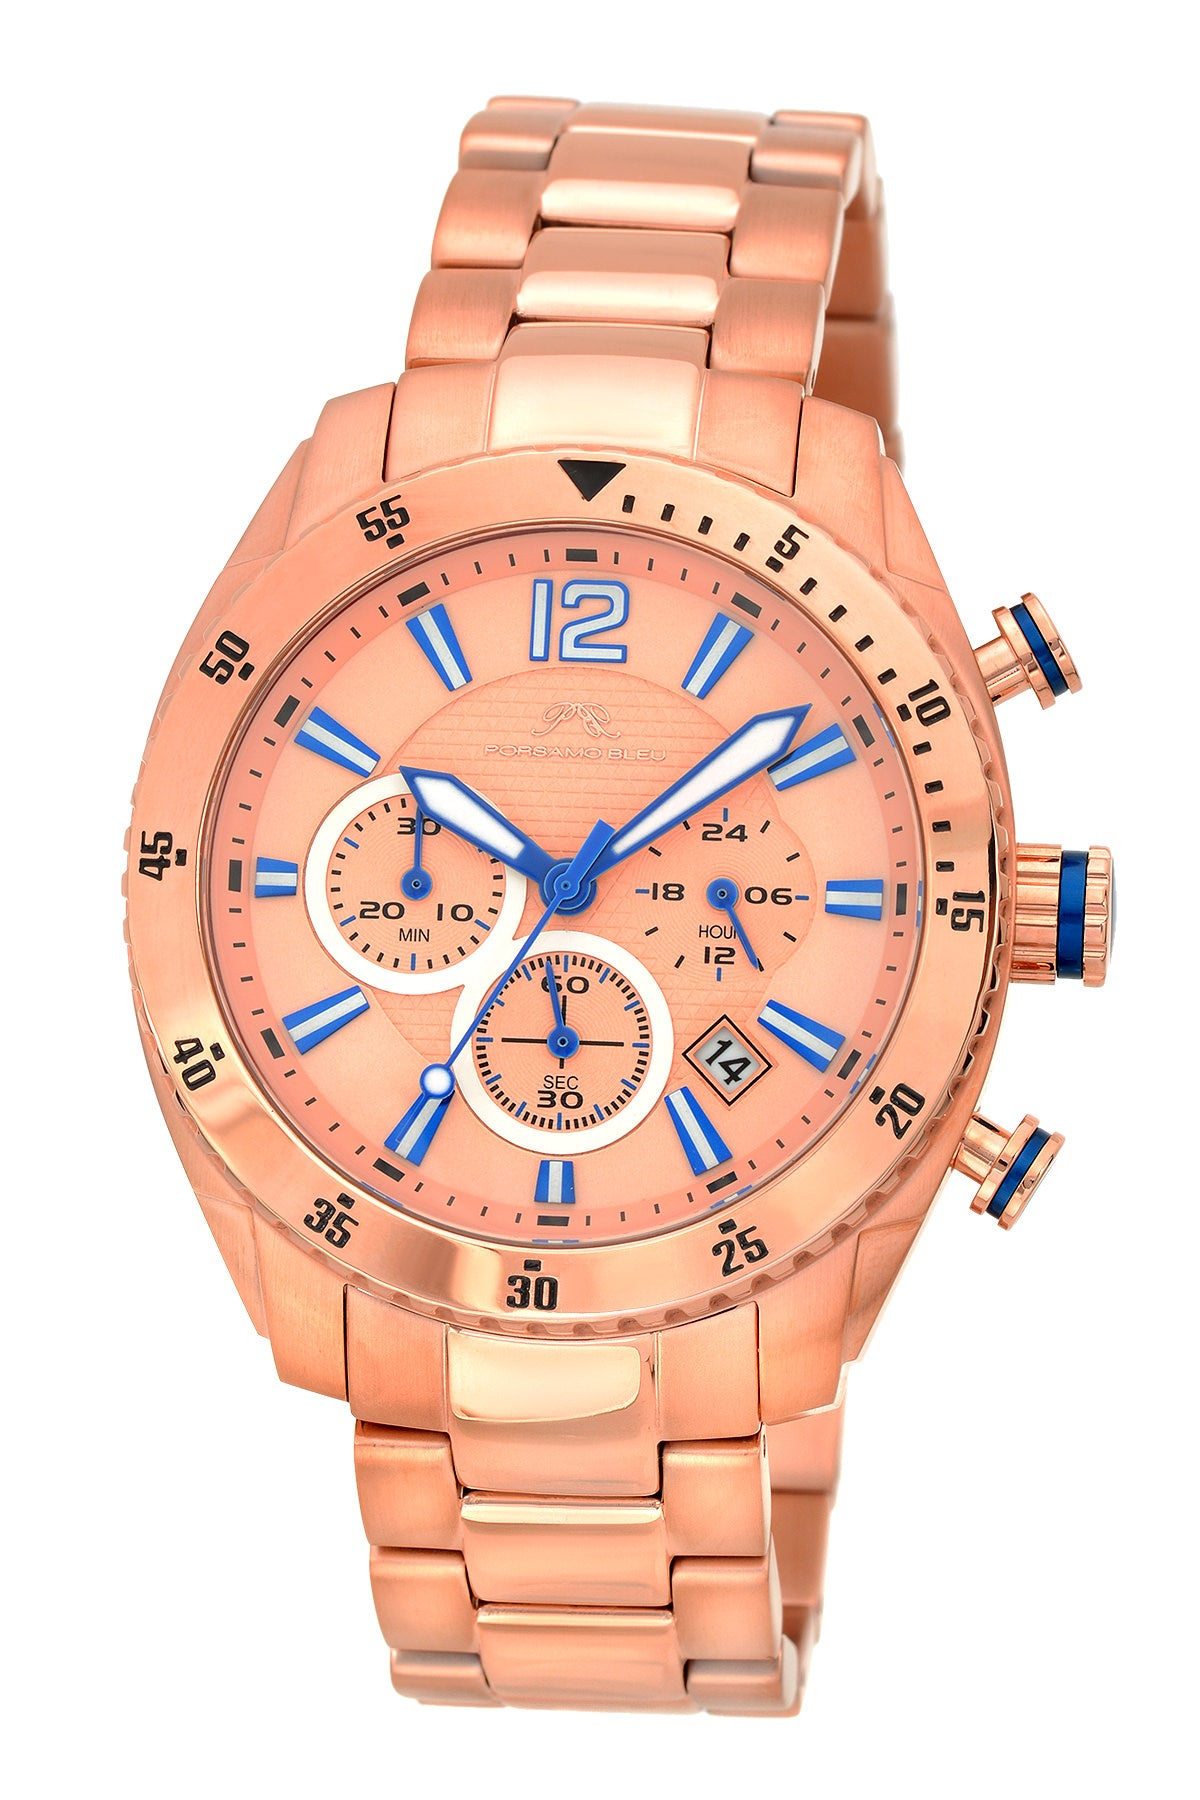 Porsamo Bleu Taylor luxury chronograph men's stainless steel watch, rose 621CTAS